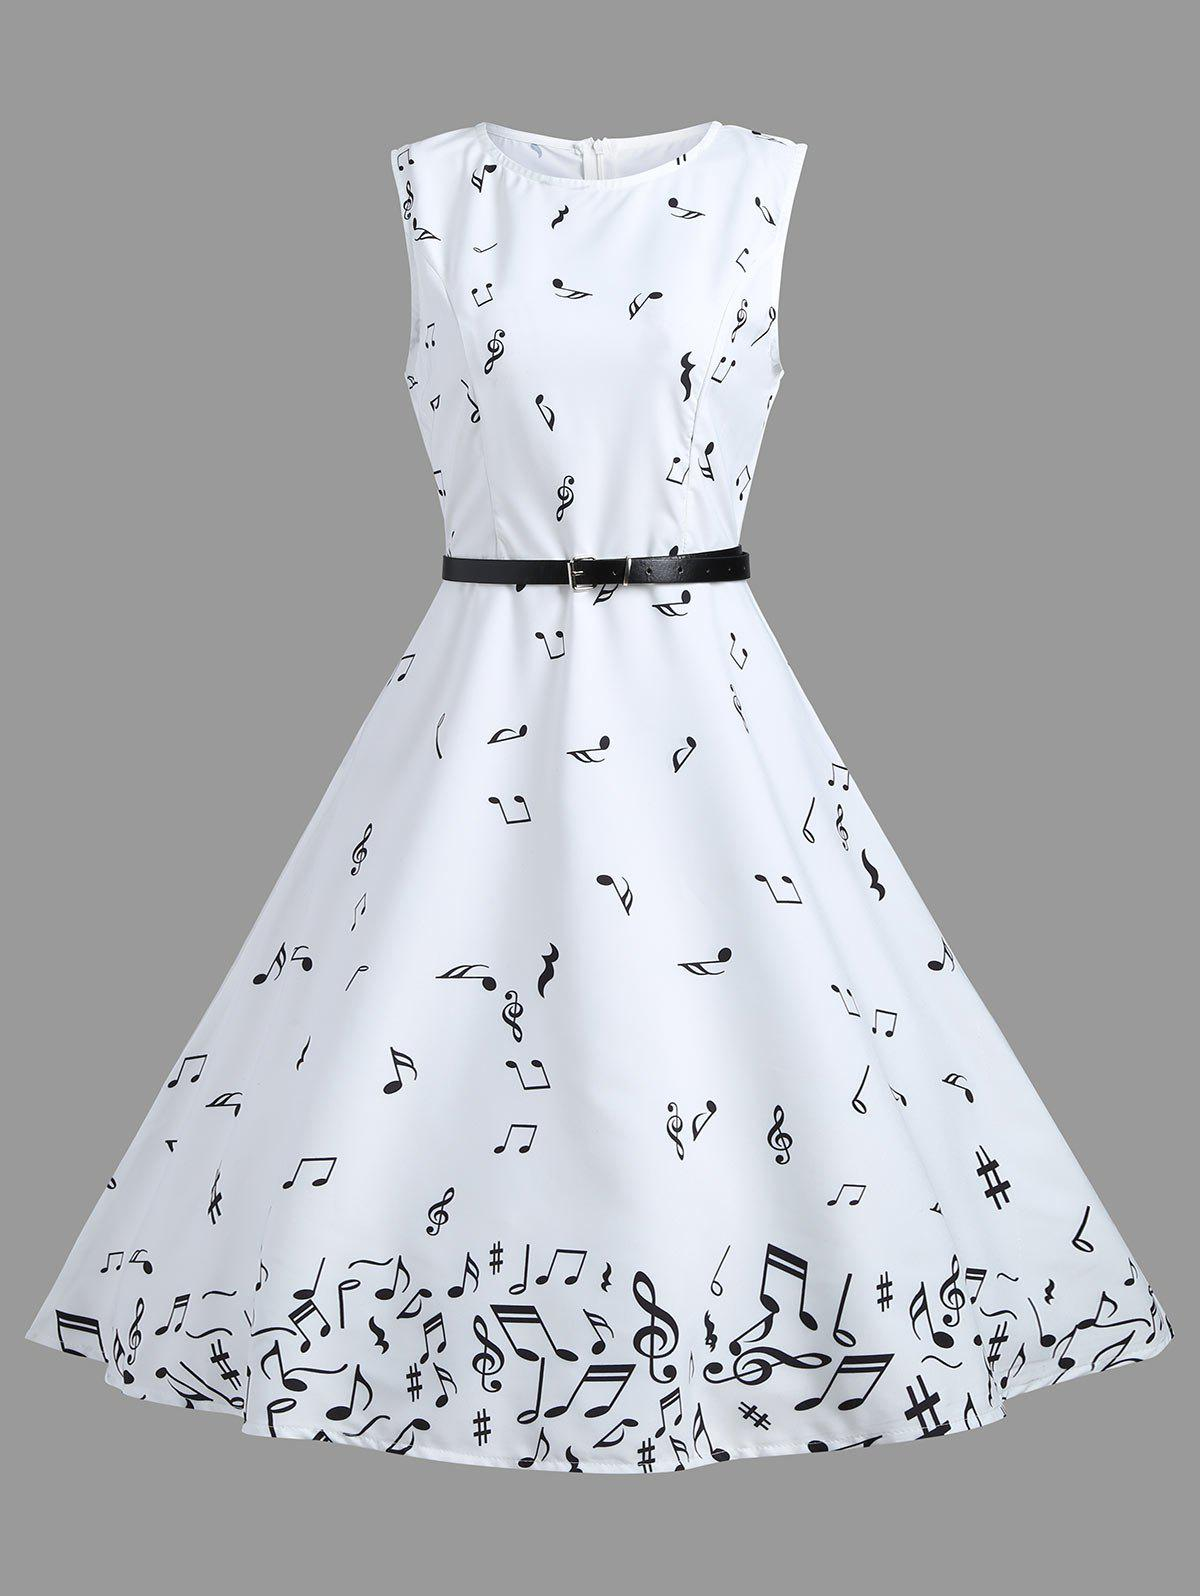 Vintage A Line Notes Print DressWOMEN<br><br>Size: S; Color: WHITE; Style: Vintage; Material: Polyester; Silhouette: A-Line; Dresses Length: Knee-Length; Neckline: Round Collar; Sleeve Length: Sleeveless; Pattern Type: Print; With Belt: Yes; Season: Spring,Summer; Weight: 0.2700kg; Package Contents: 1 x Dress;